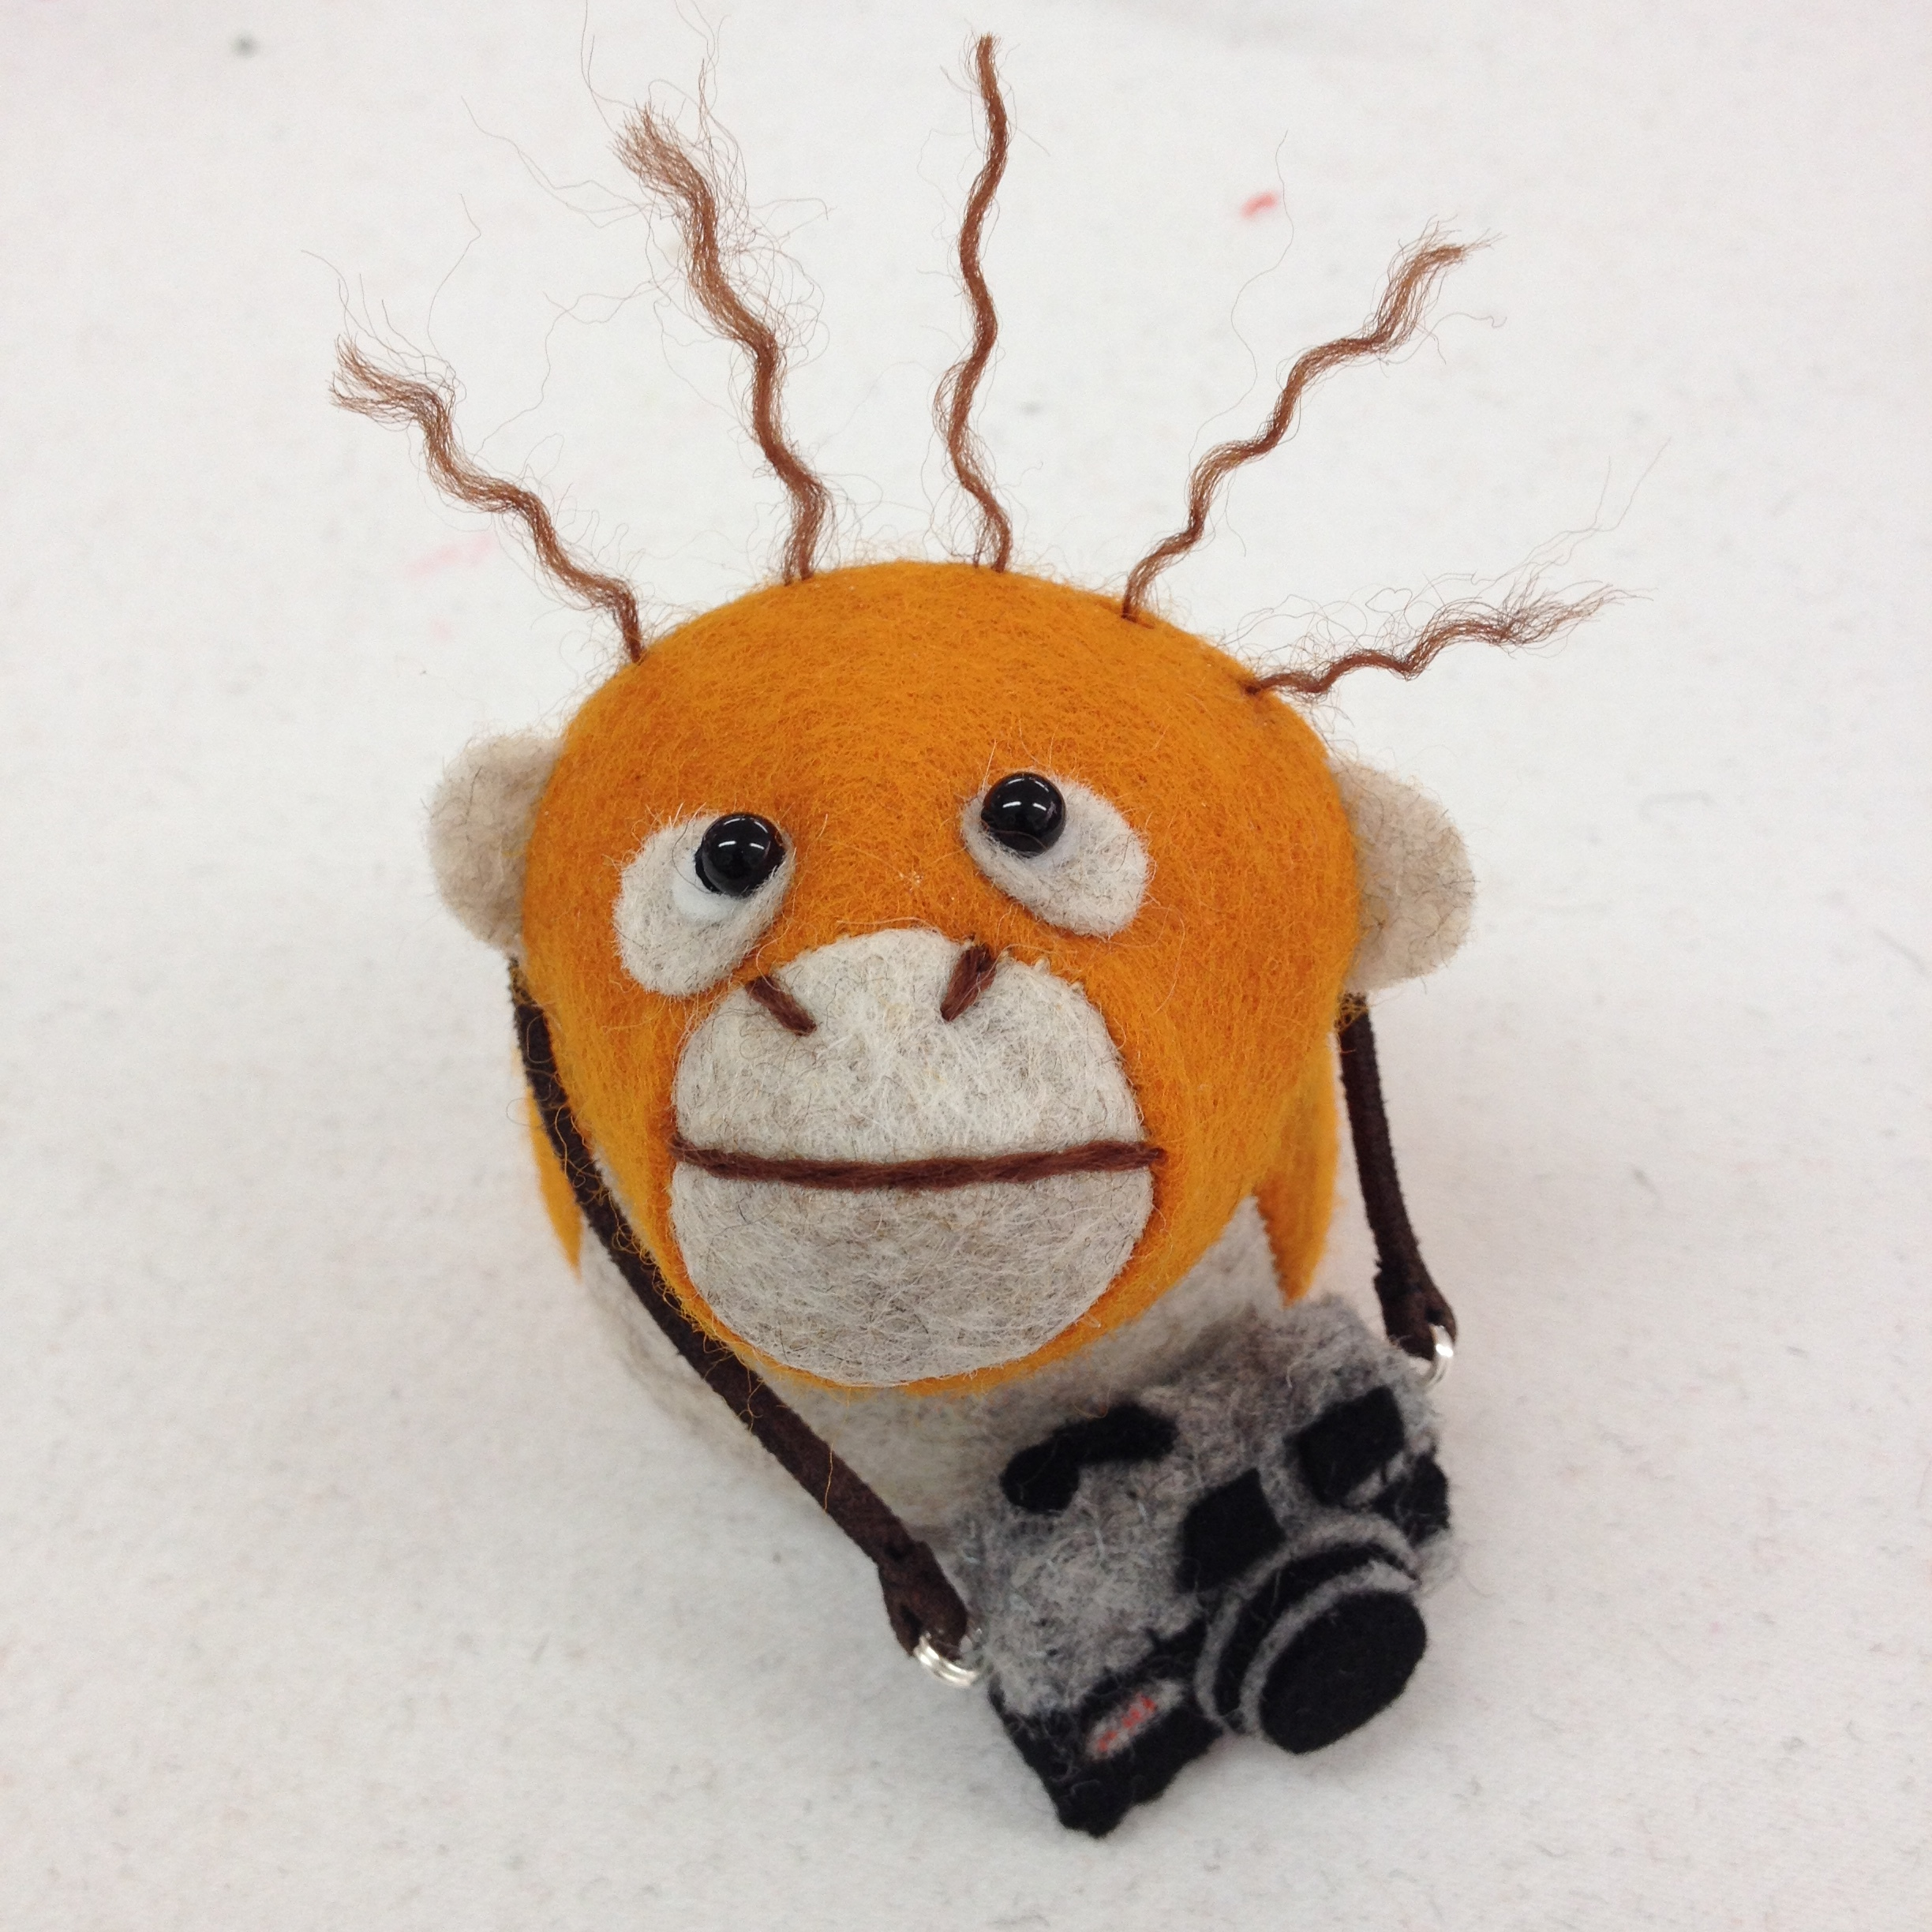 Bilberry Woods character Oscar the Orangutan with a miniature felt camera by Laura Mirjami | Mirjami Design